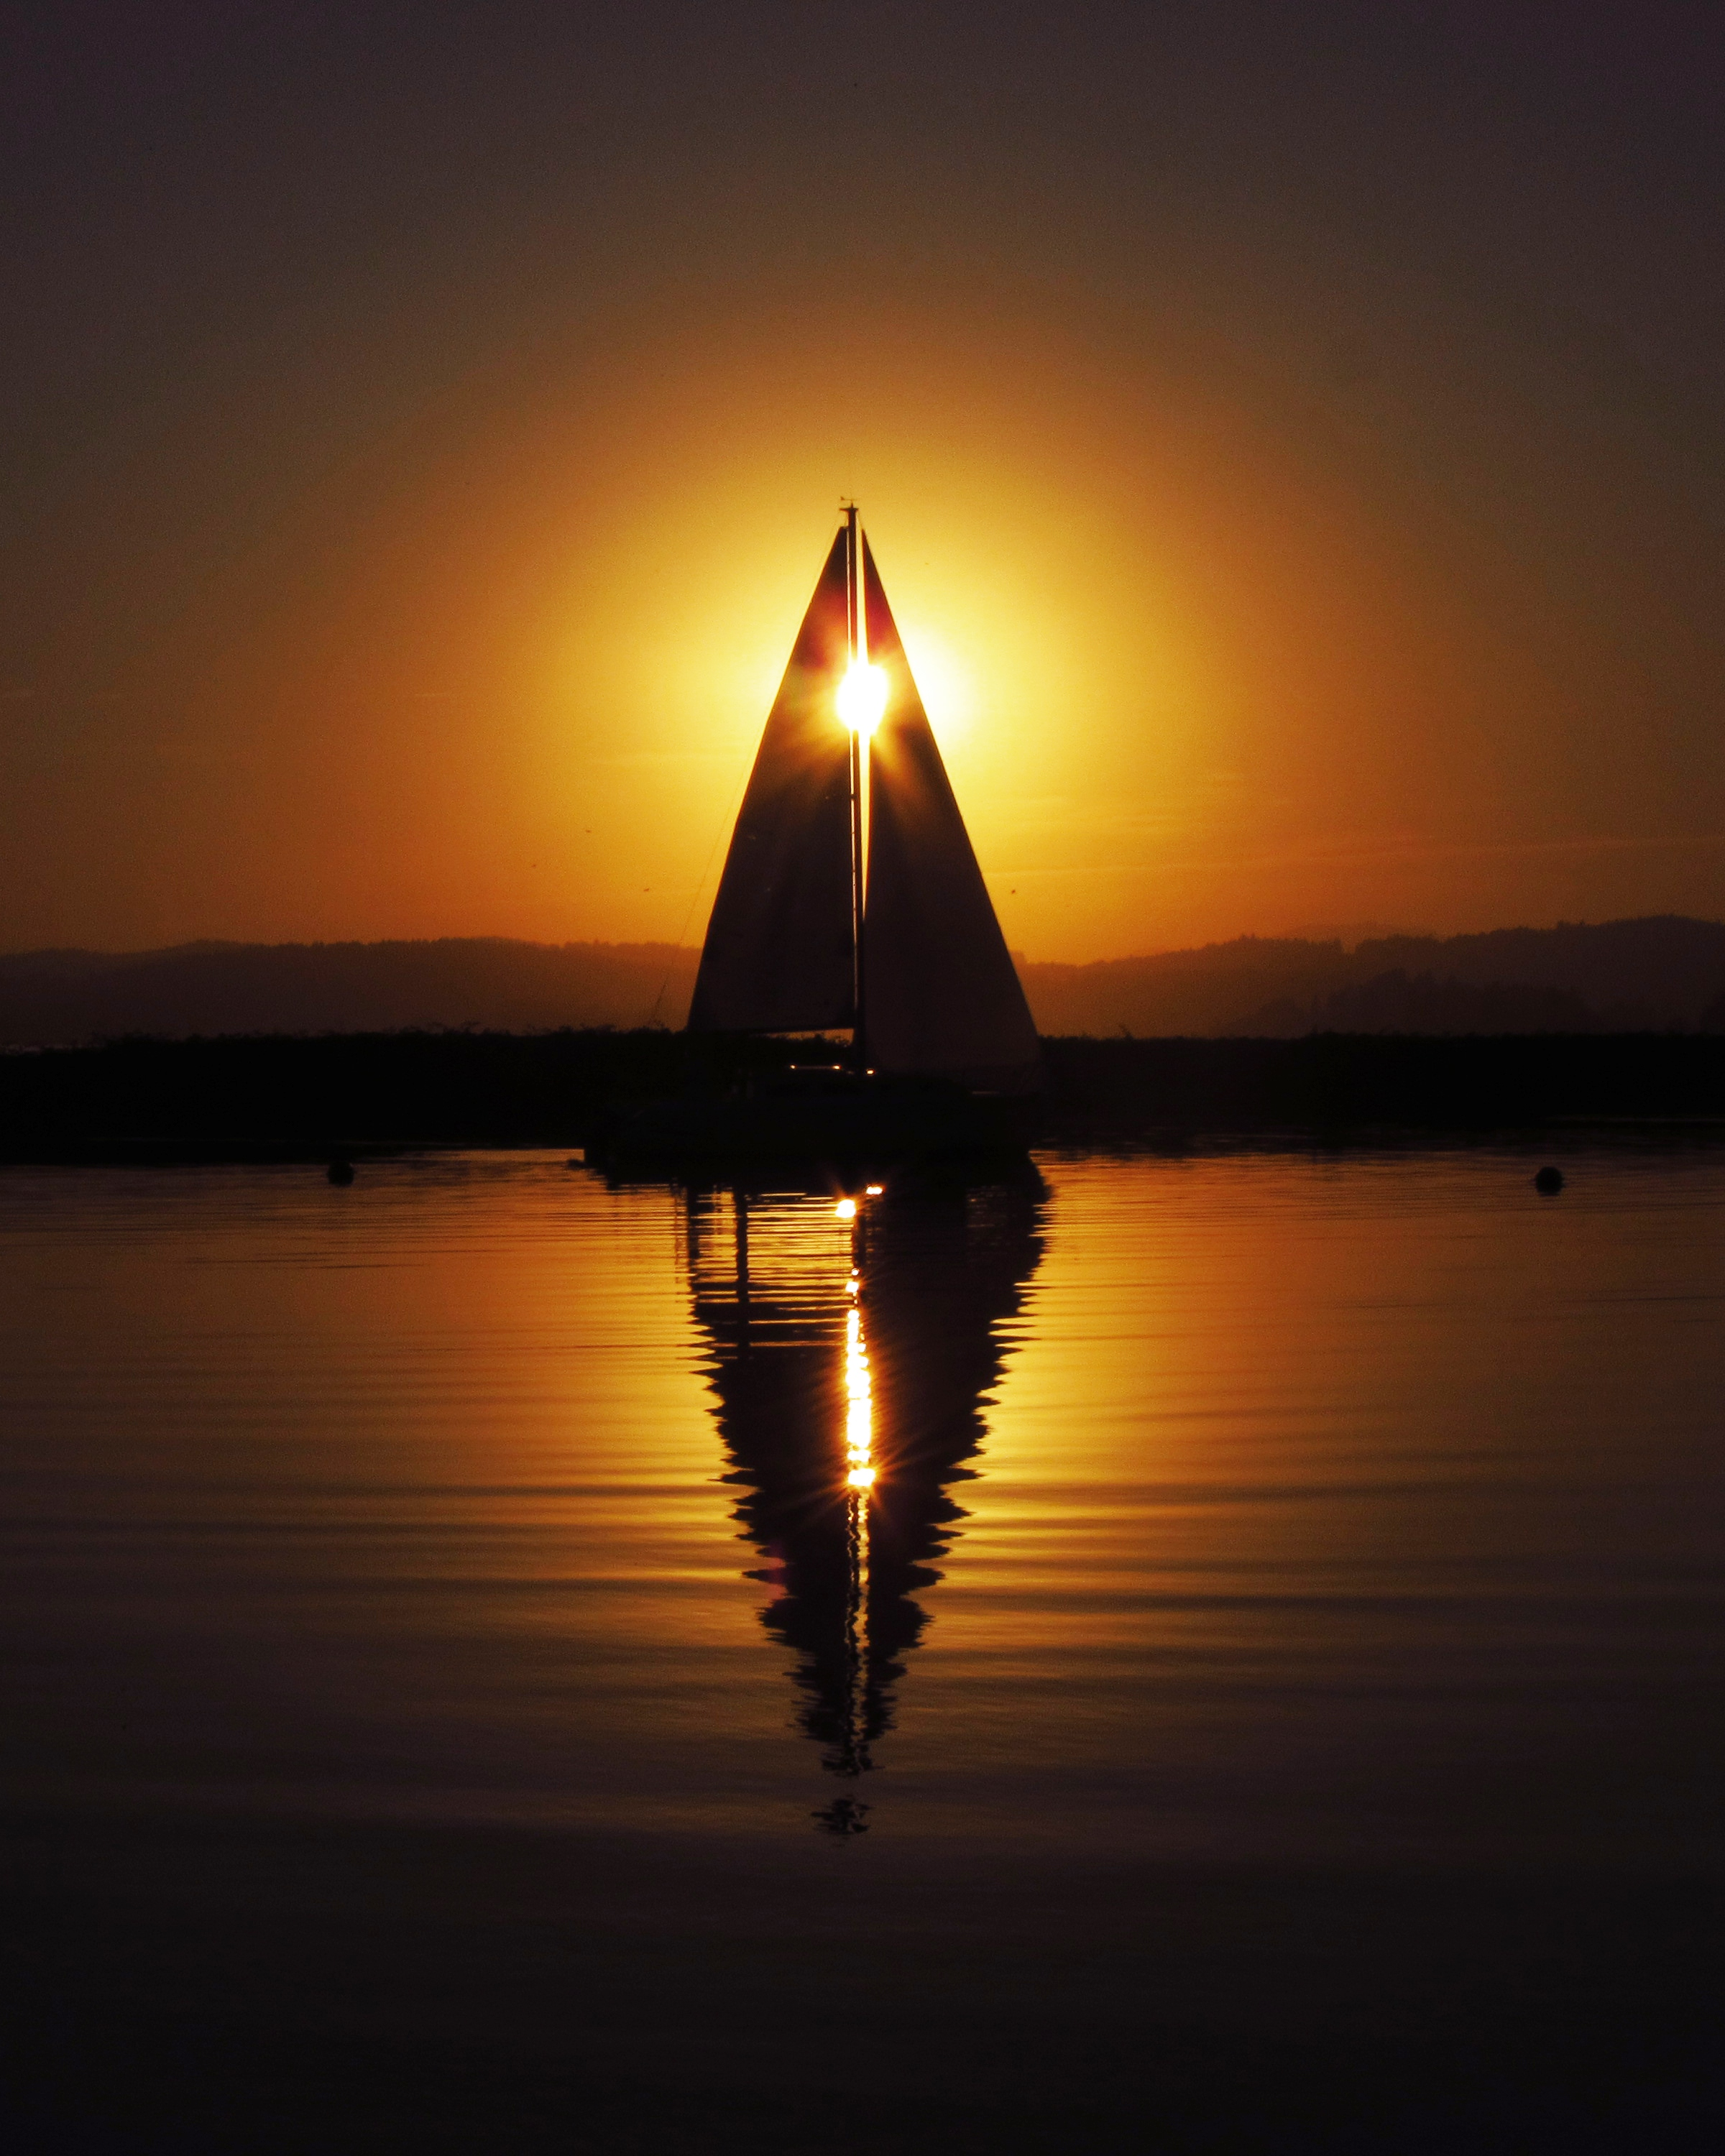 Sunset sailboat avatar